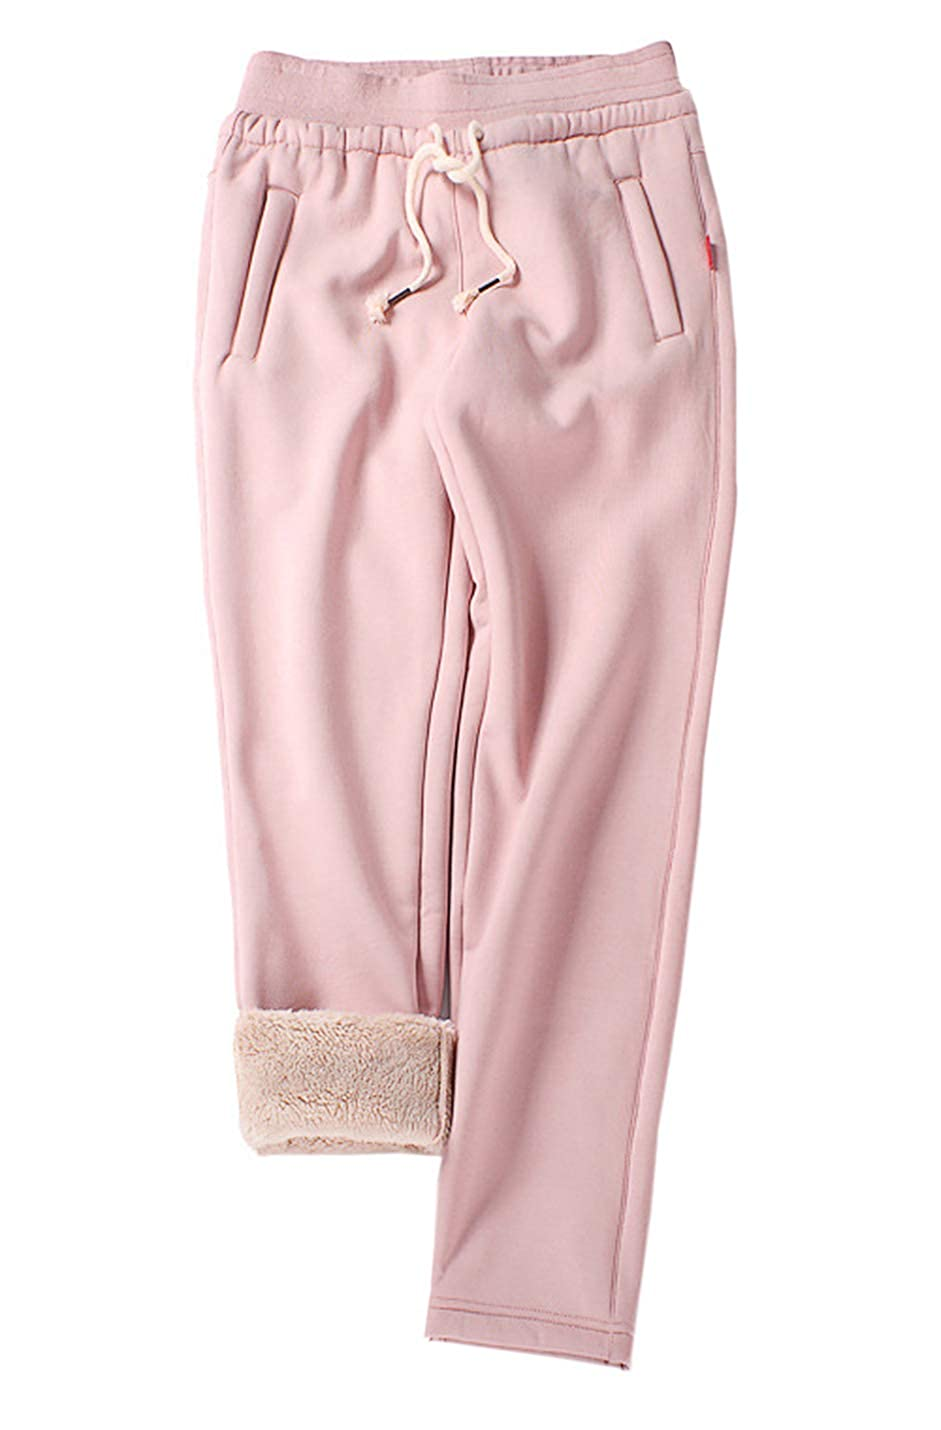 2  Pink Gihuo Women's Winter Fleece Pants Sherpa Lined Sweatpants Active Running Jogger Pants